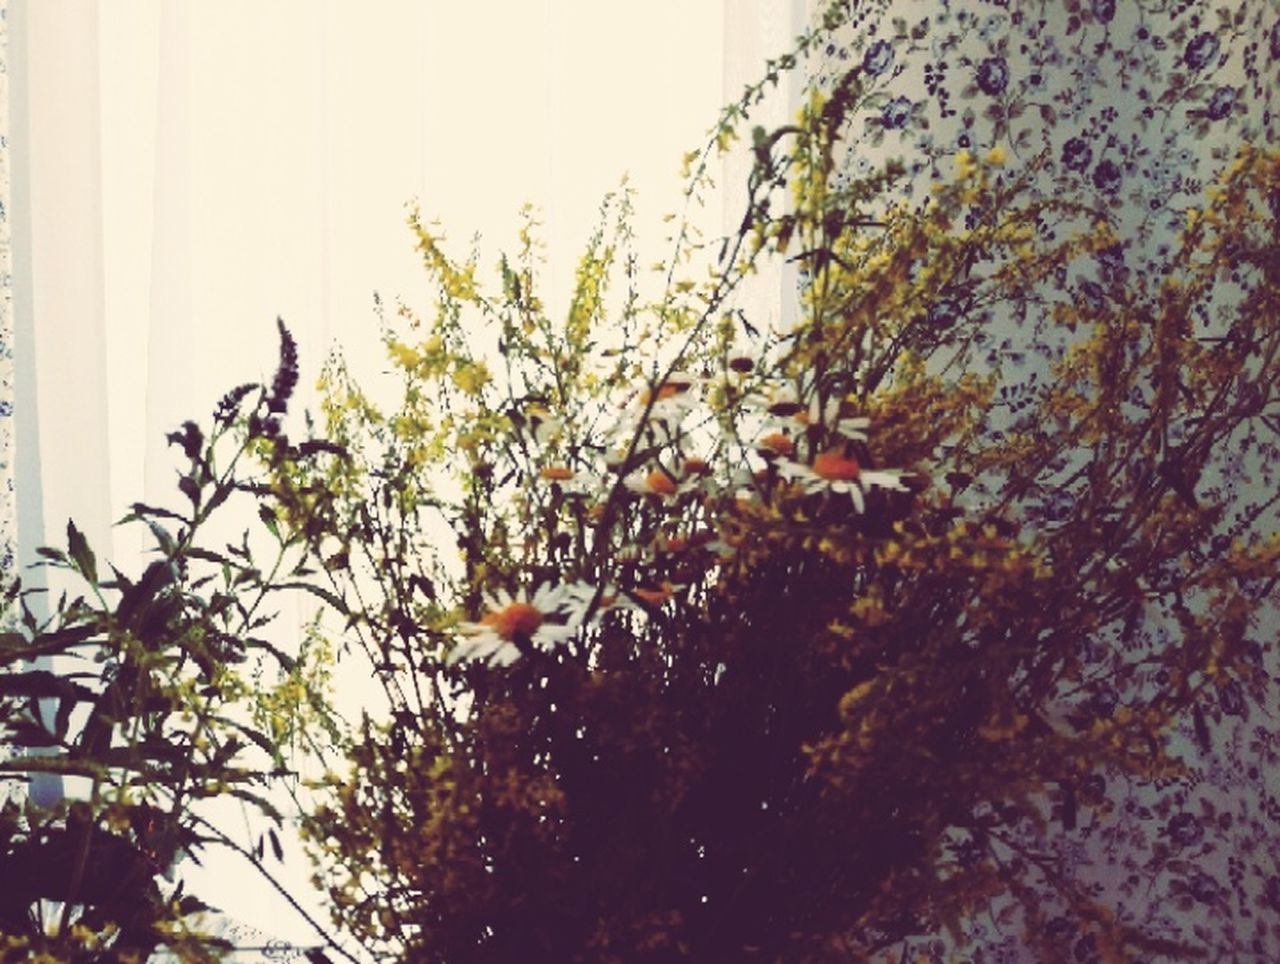 growth, tree, plant, nature, leaf, no people, clear sky, day, outdoors, branch, beauty in nature, close-up, flower, sky, freshness